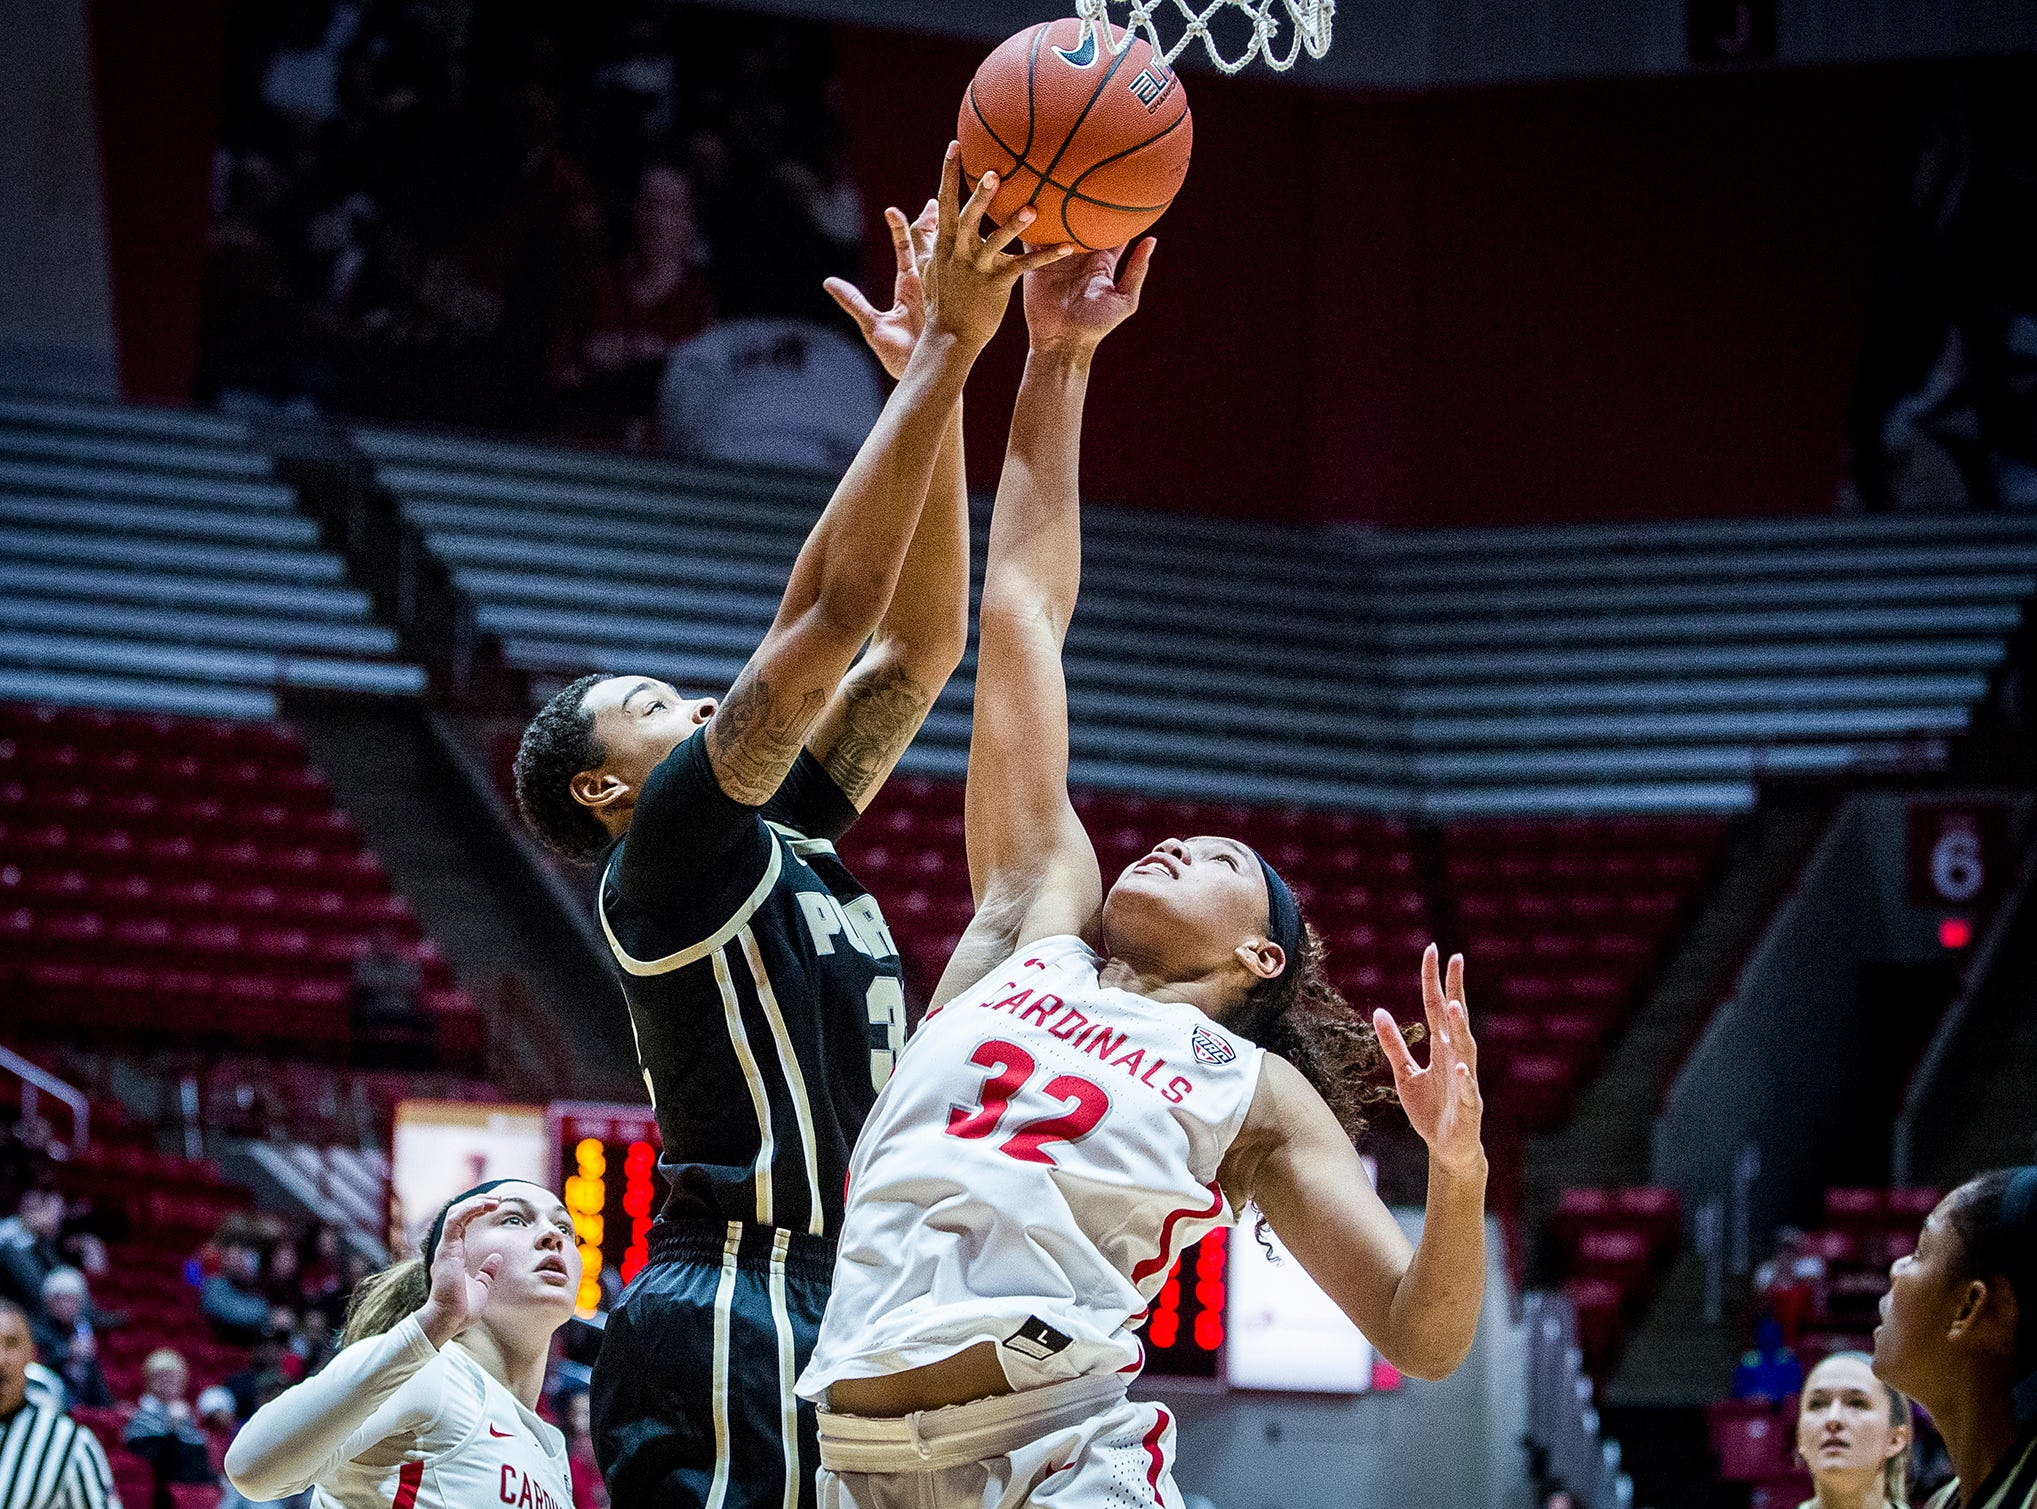 Purdue's Ae'Rianna Harris grabs a rebound past Ball State's defense during their game at Worthen Arena Wednesday, Nov. 7, 2018.